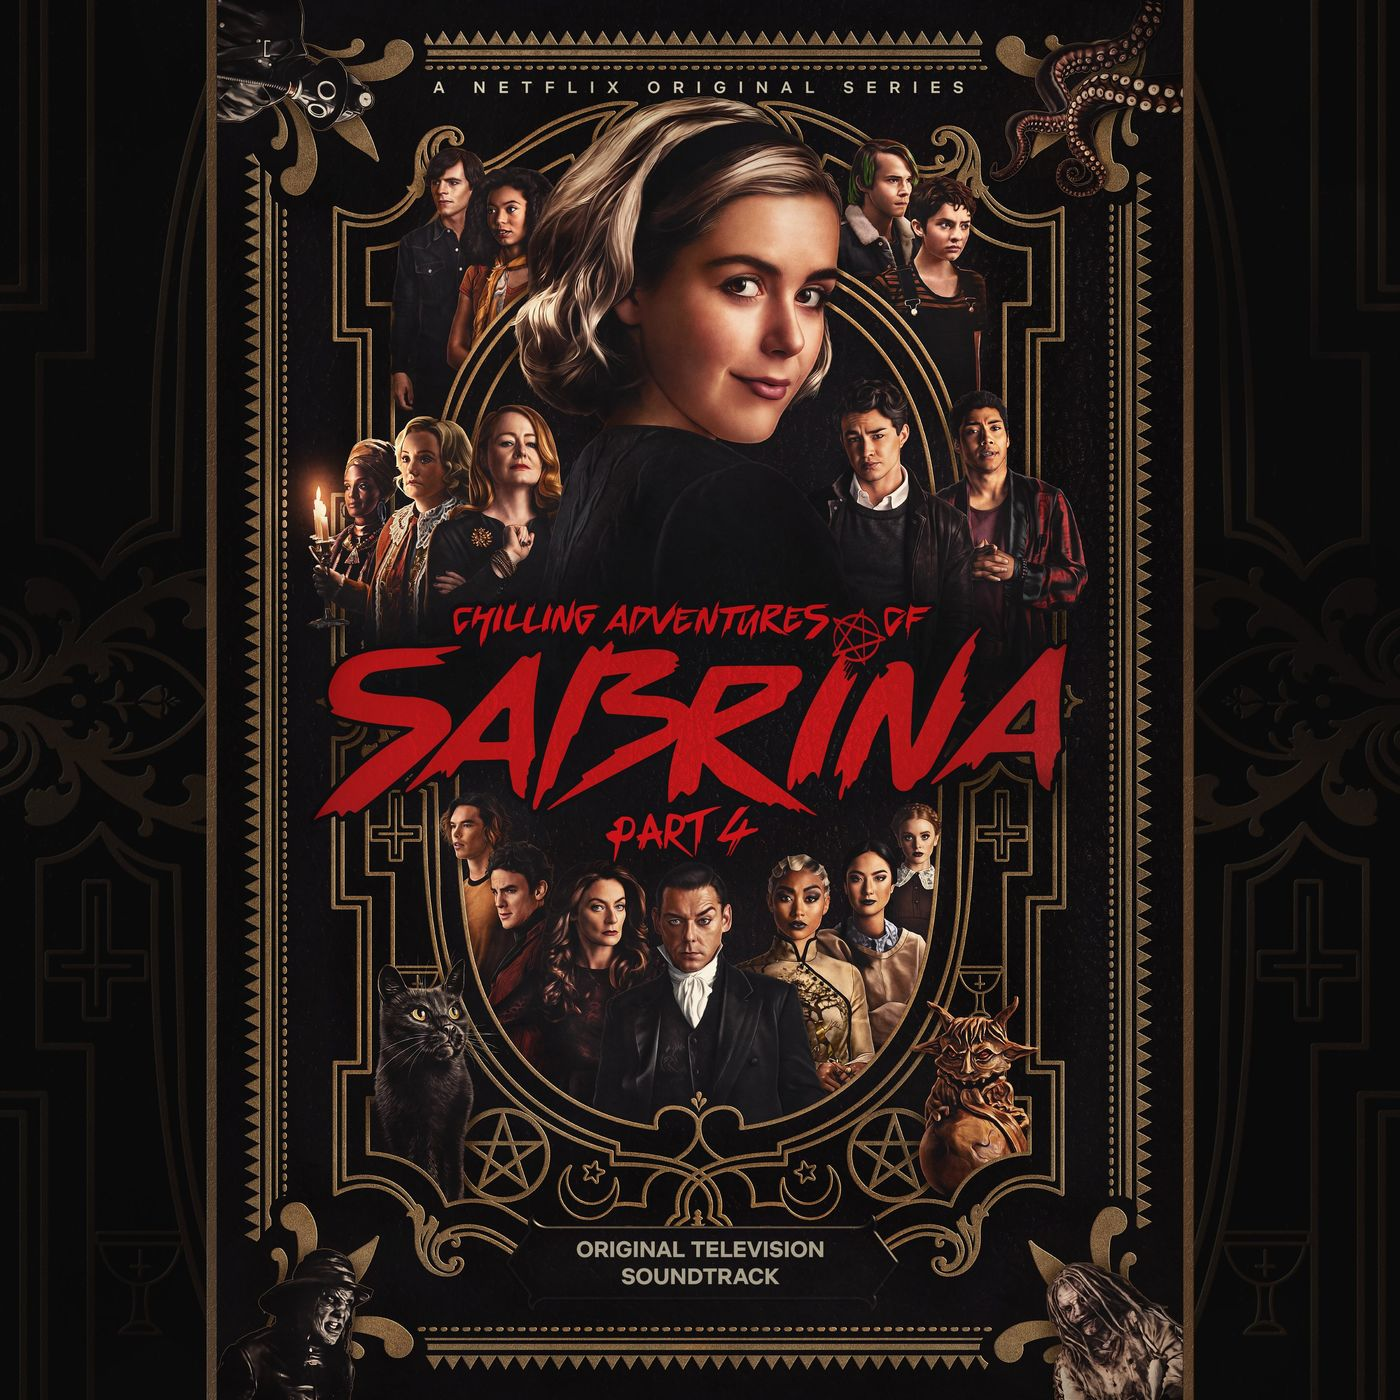 Cast of Chilling Adventures of Sabrina, Jaz Sinclair, Jonathan Whitesell, Lachlan Watson, Ross Lynch - Radio Ga Ga (feat. Ross Lynch, Jaz Sinclair, Lachlan Watson & Jonathan Whitesell)